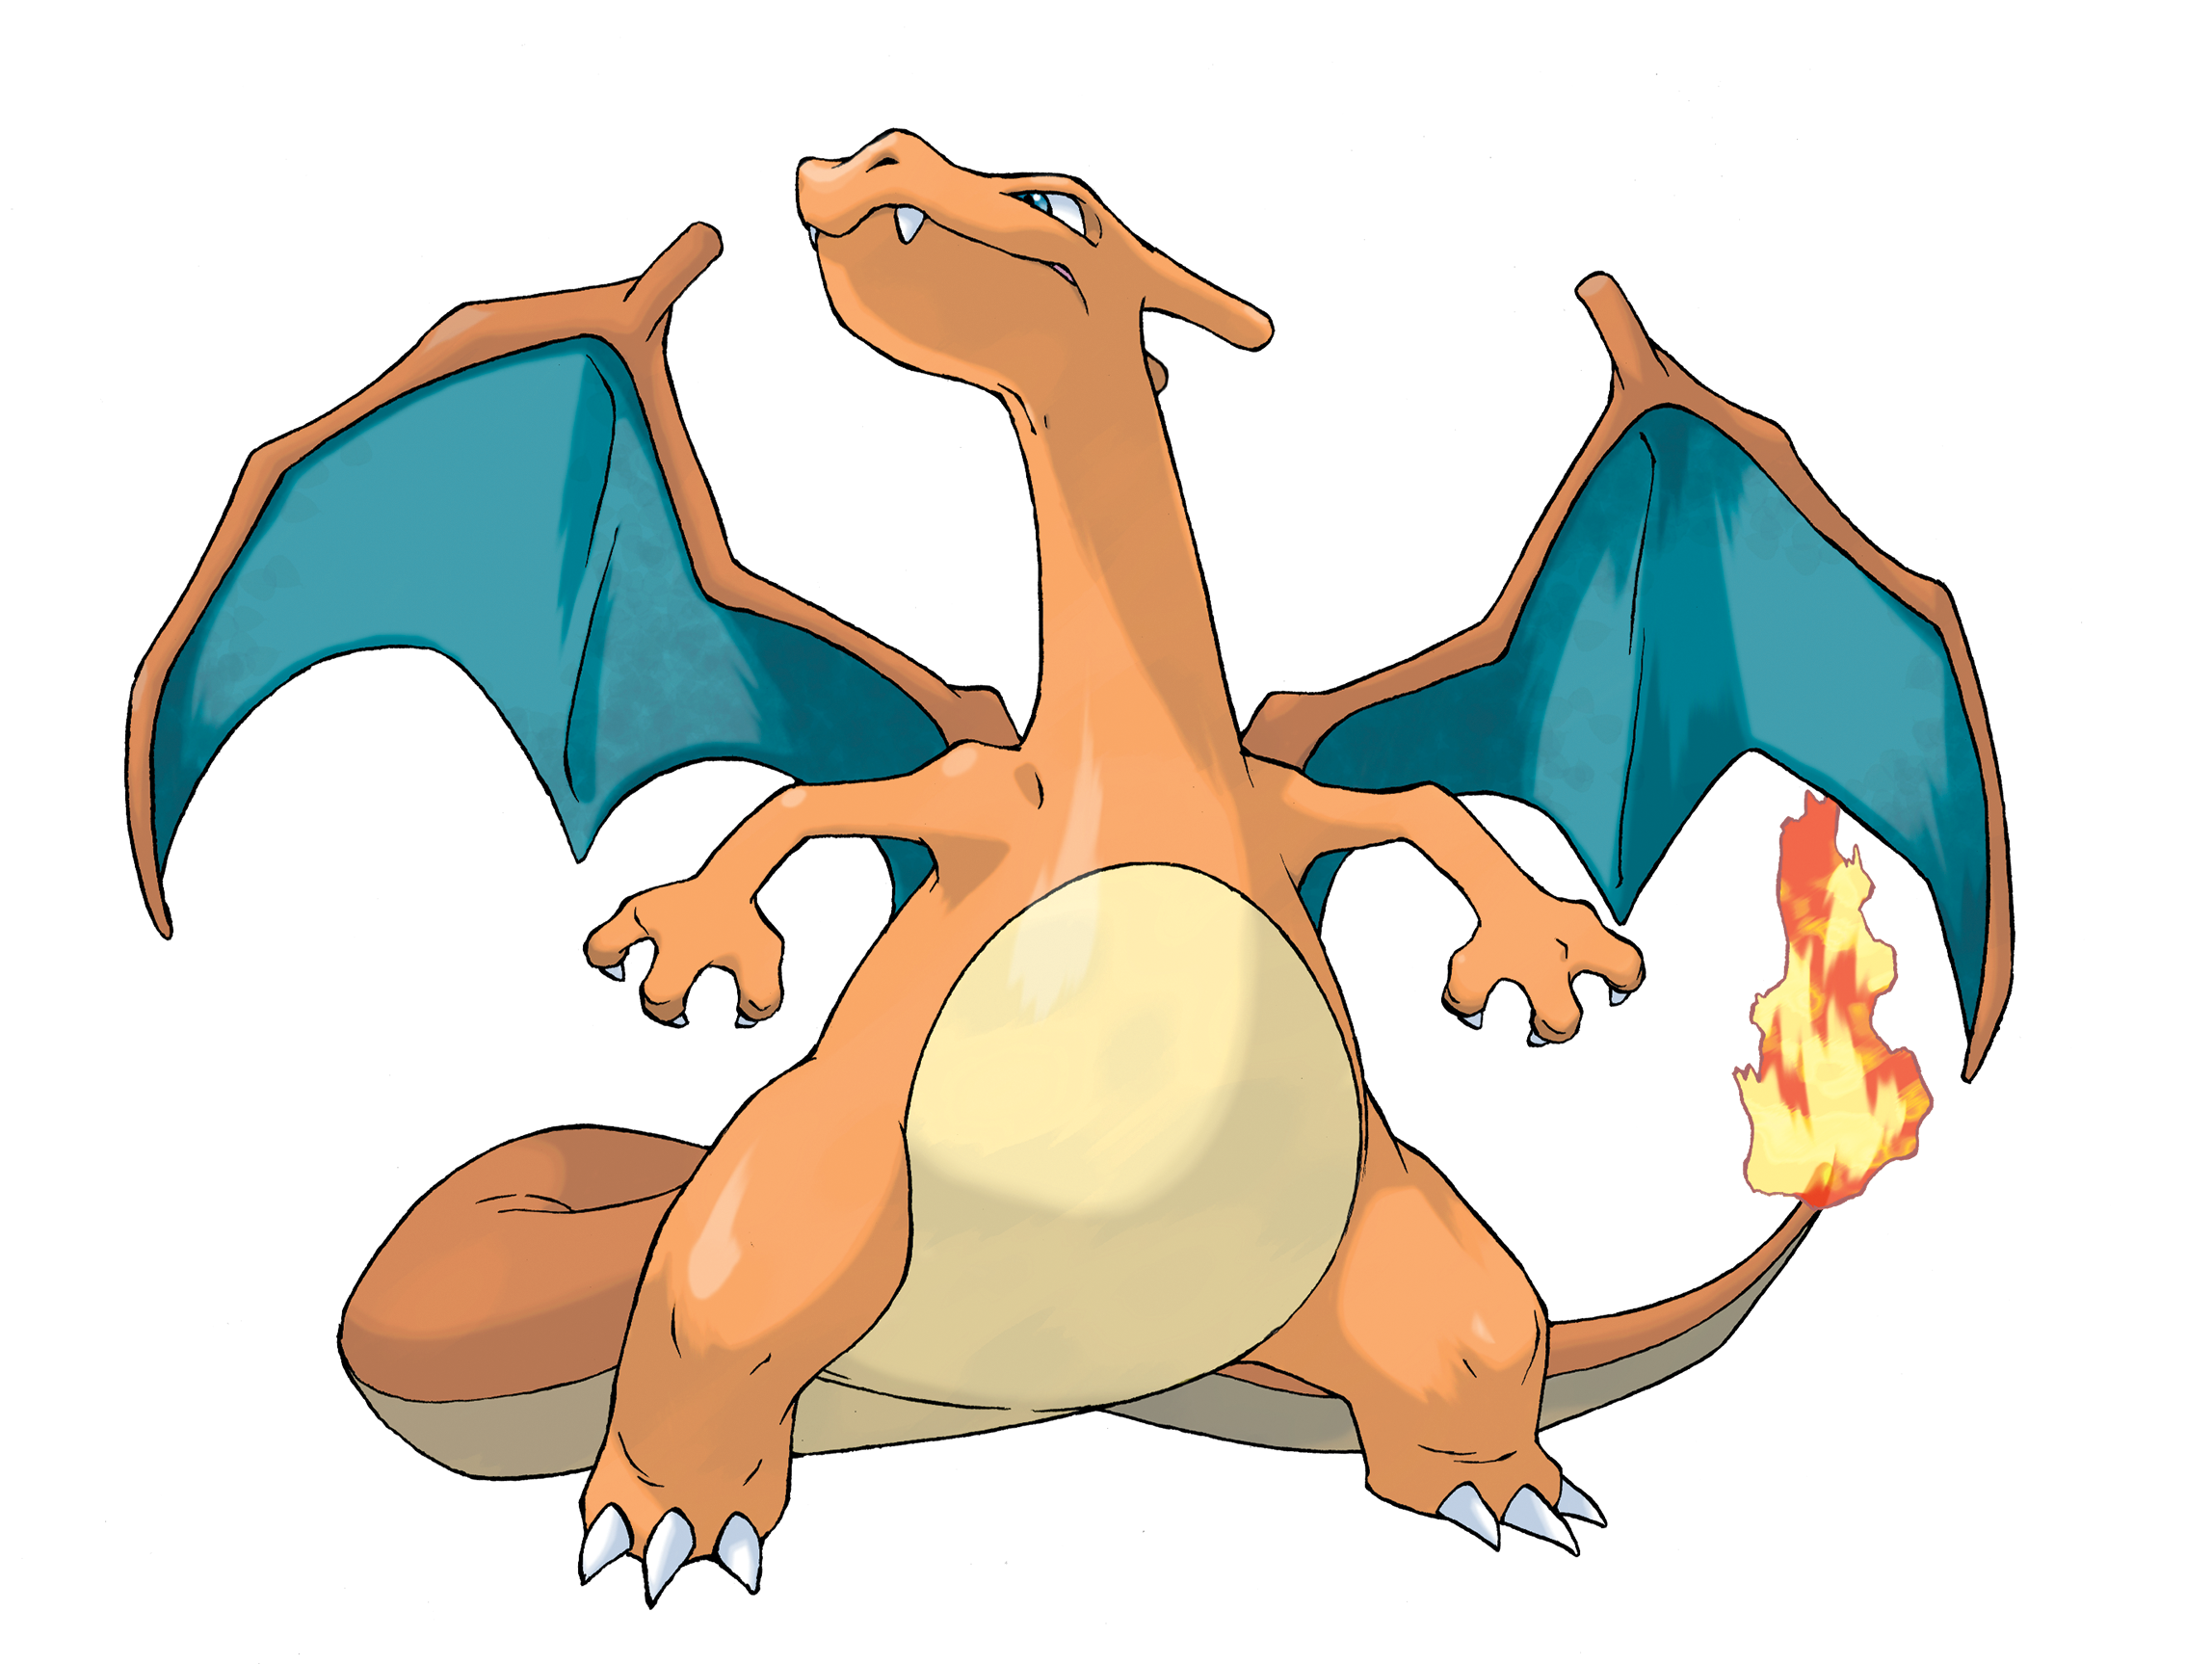 whats your favorite pokemon ? - Page 2 006Charizard